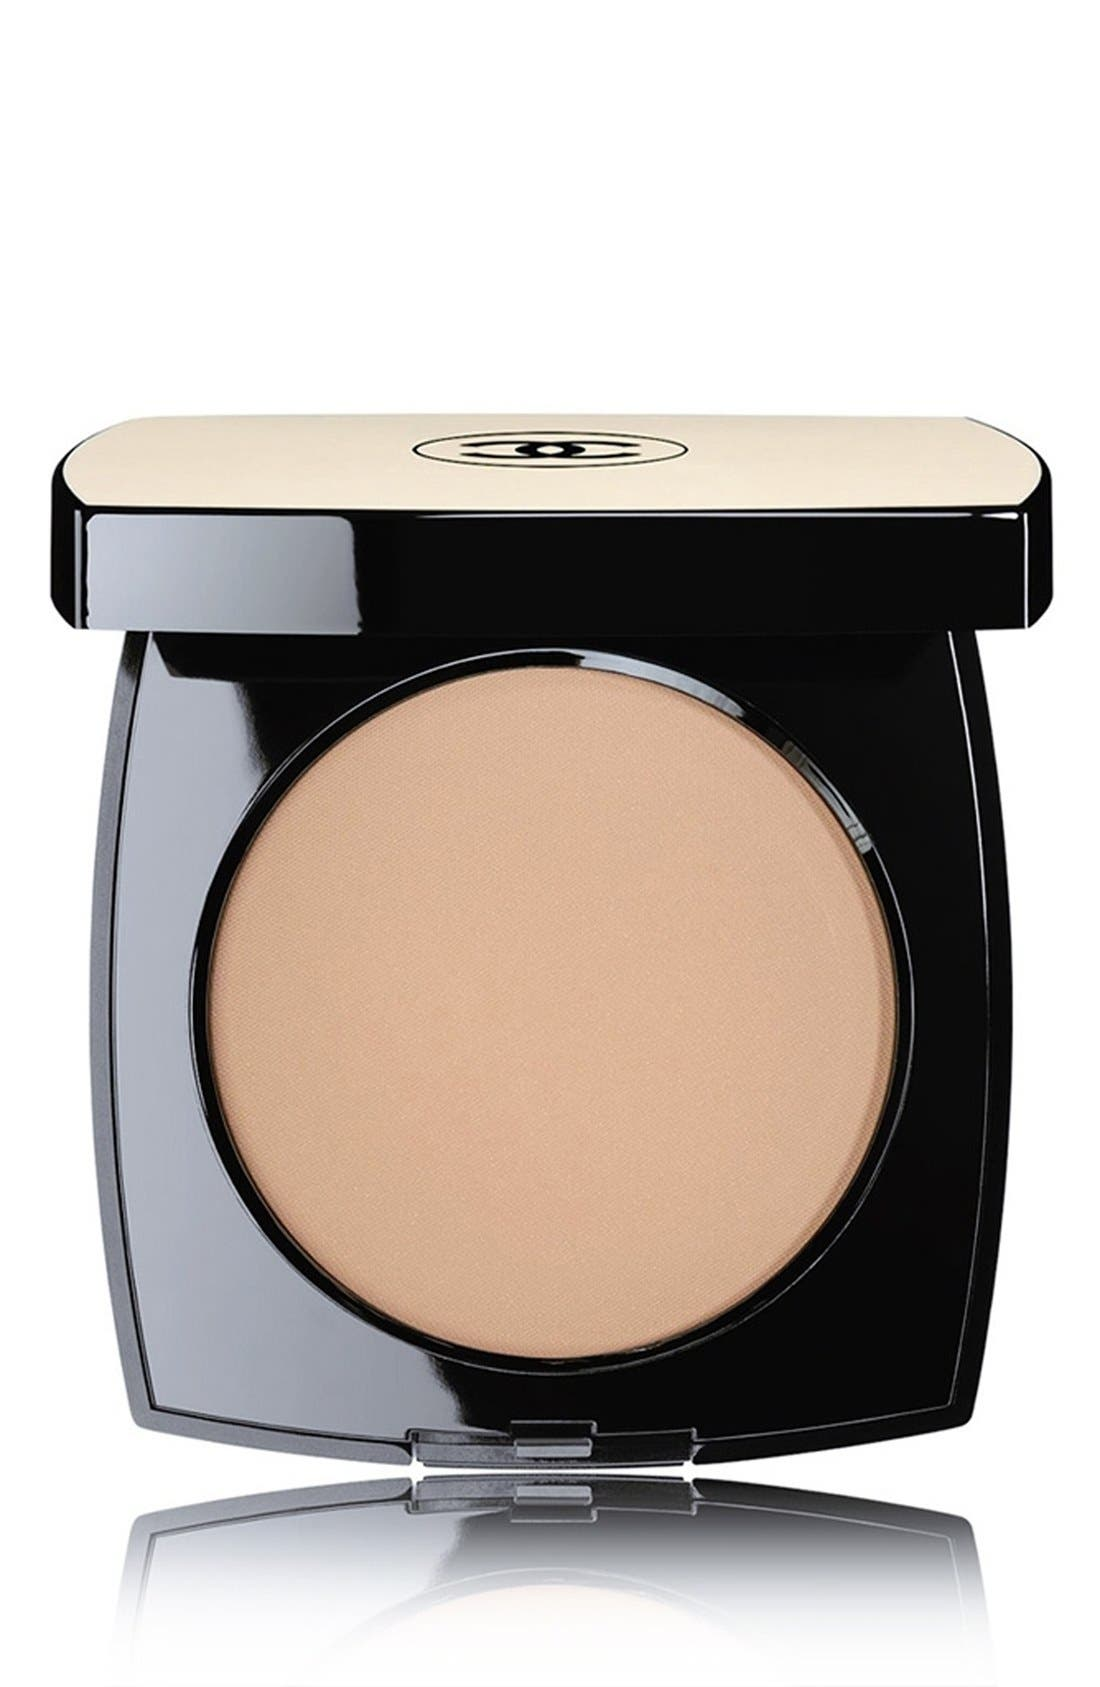 CHANEL LES BEIGES 